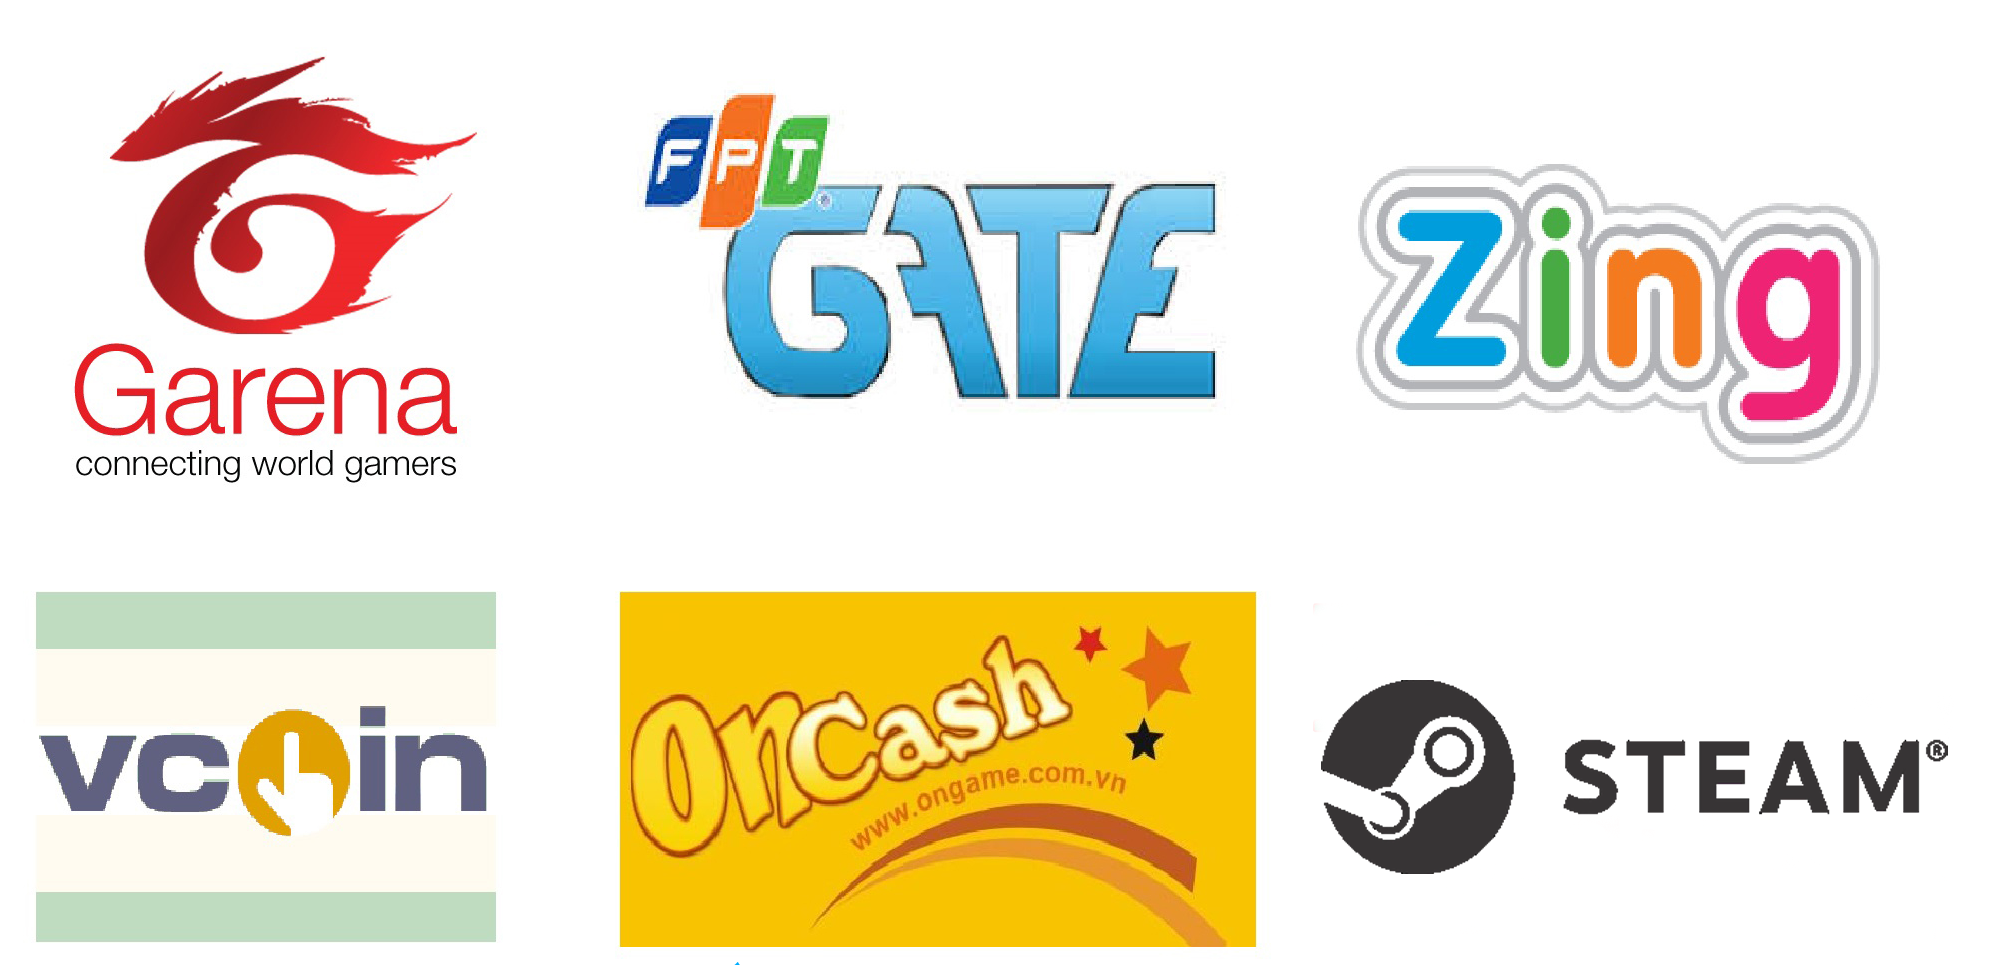 Thẻ game FPT, Garena, vcoin - Ảnh 1 ...